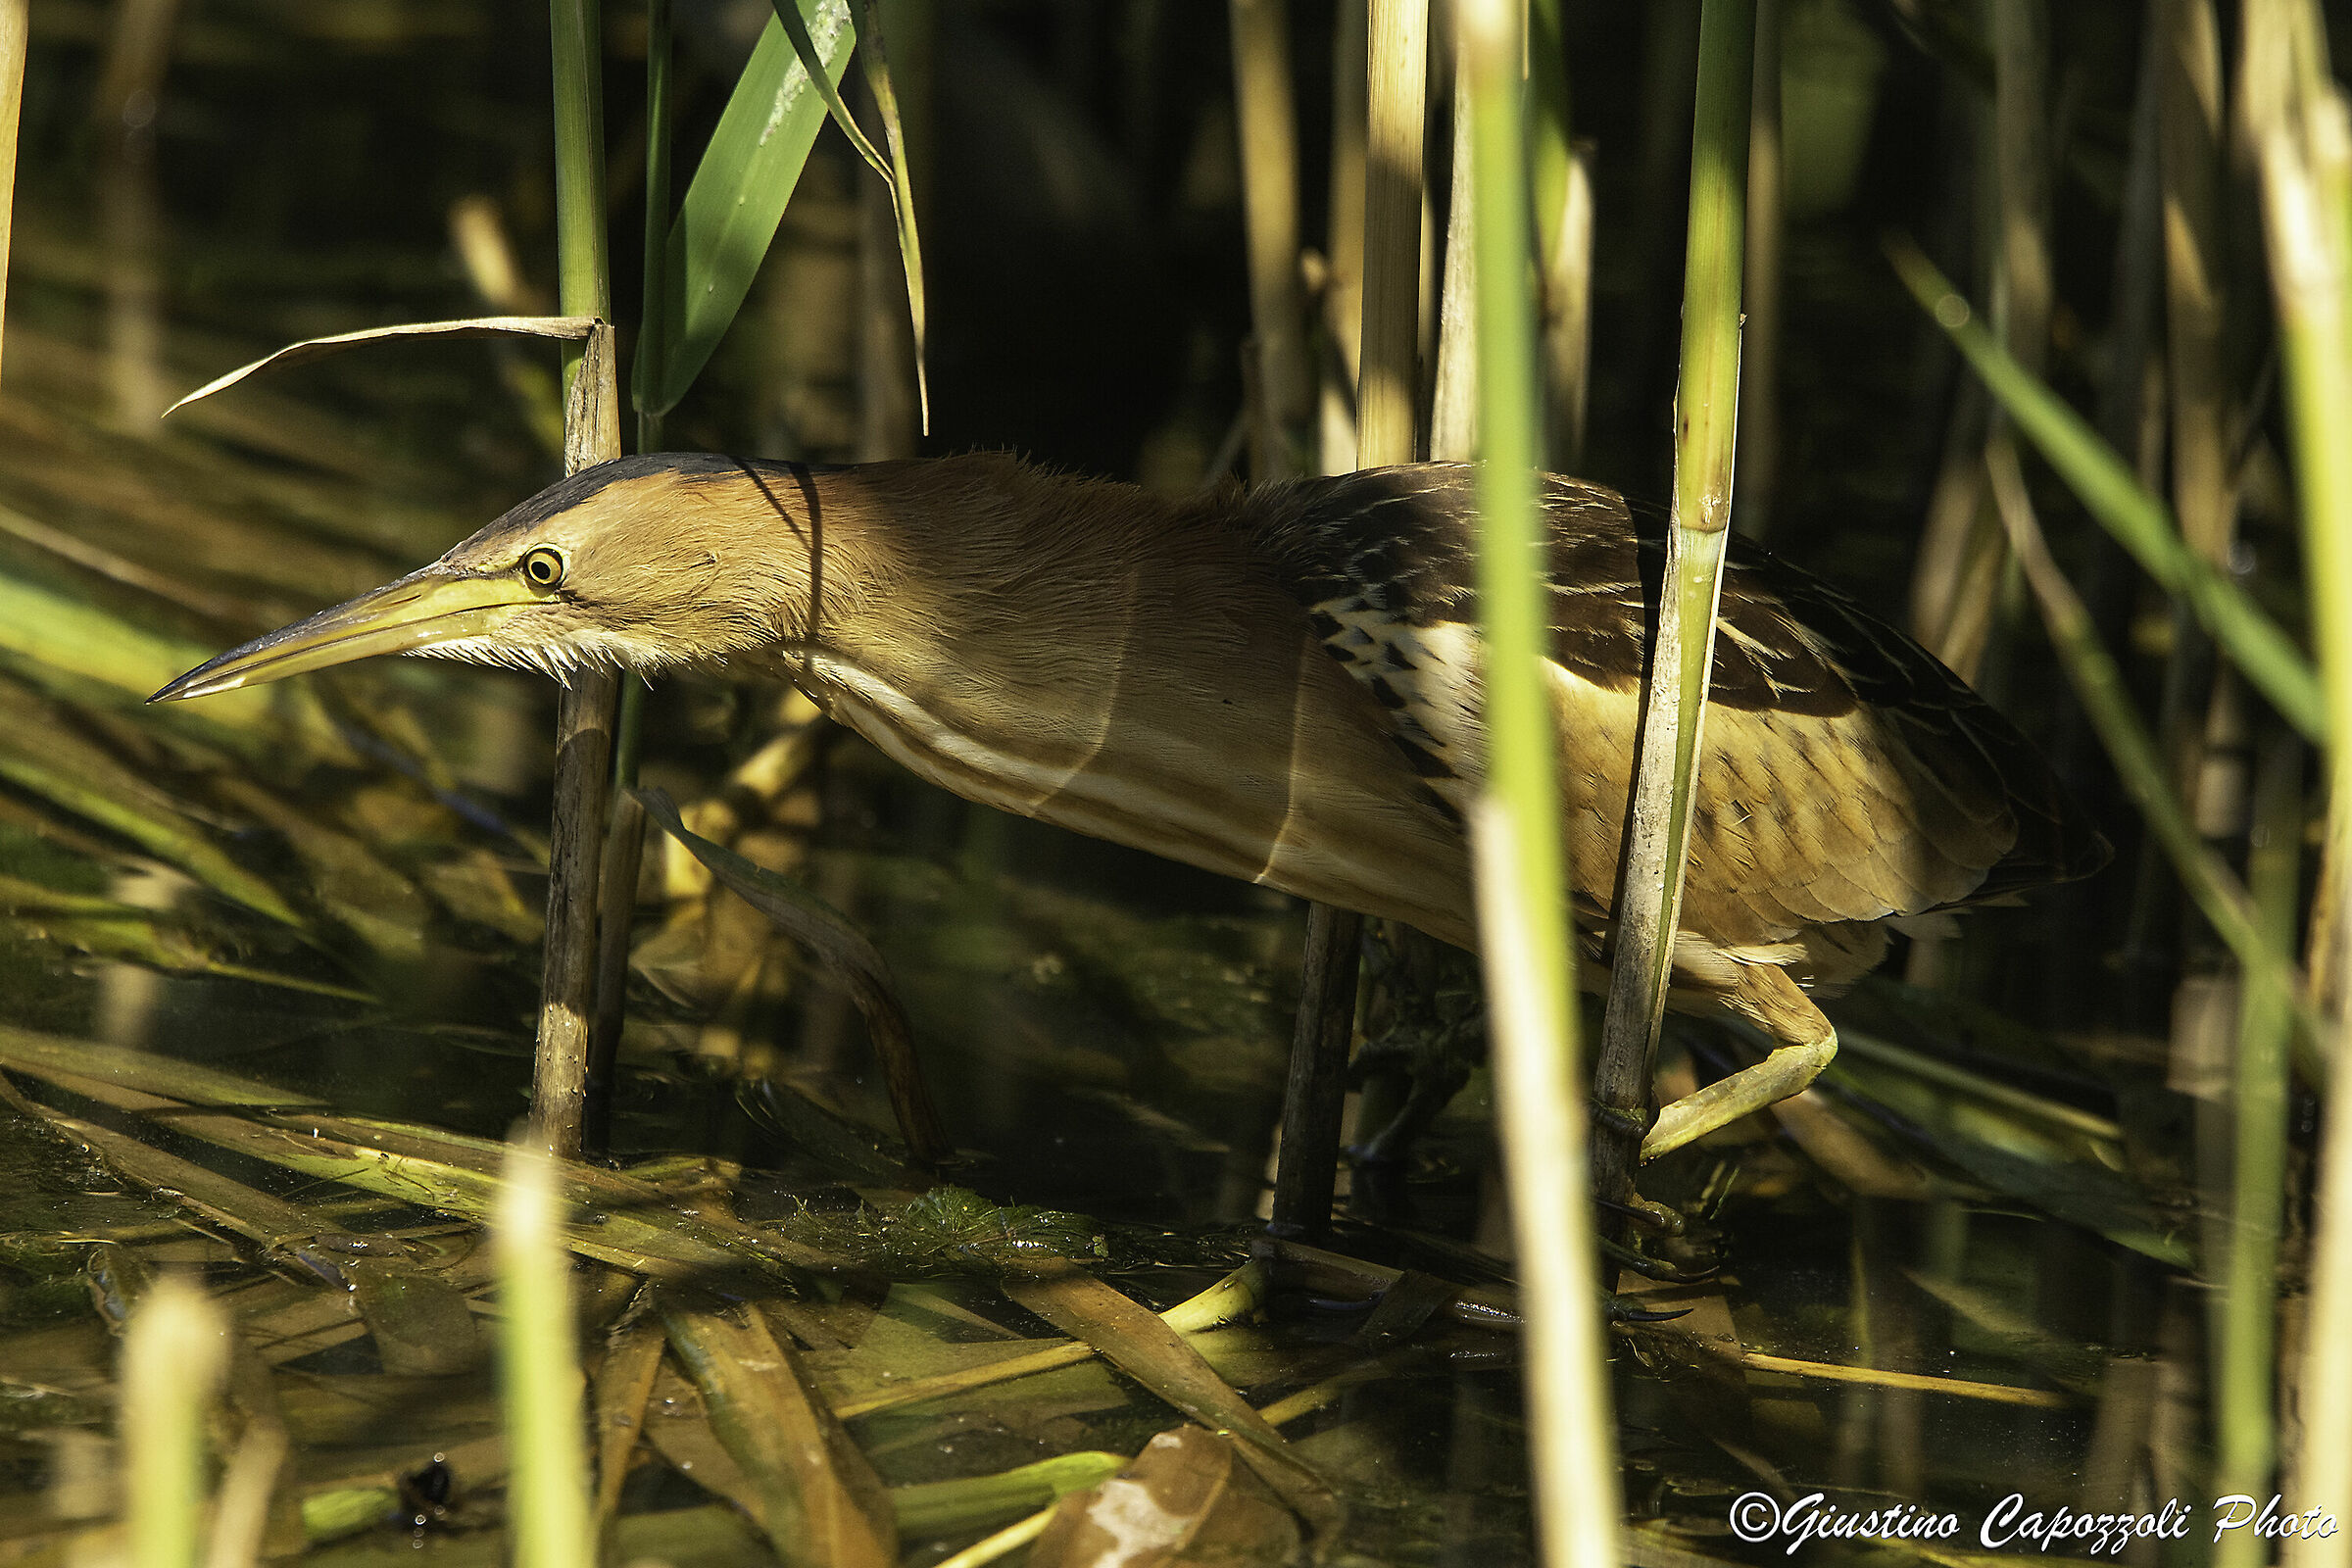 Ambushed in the reed...